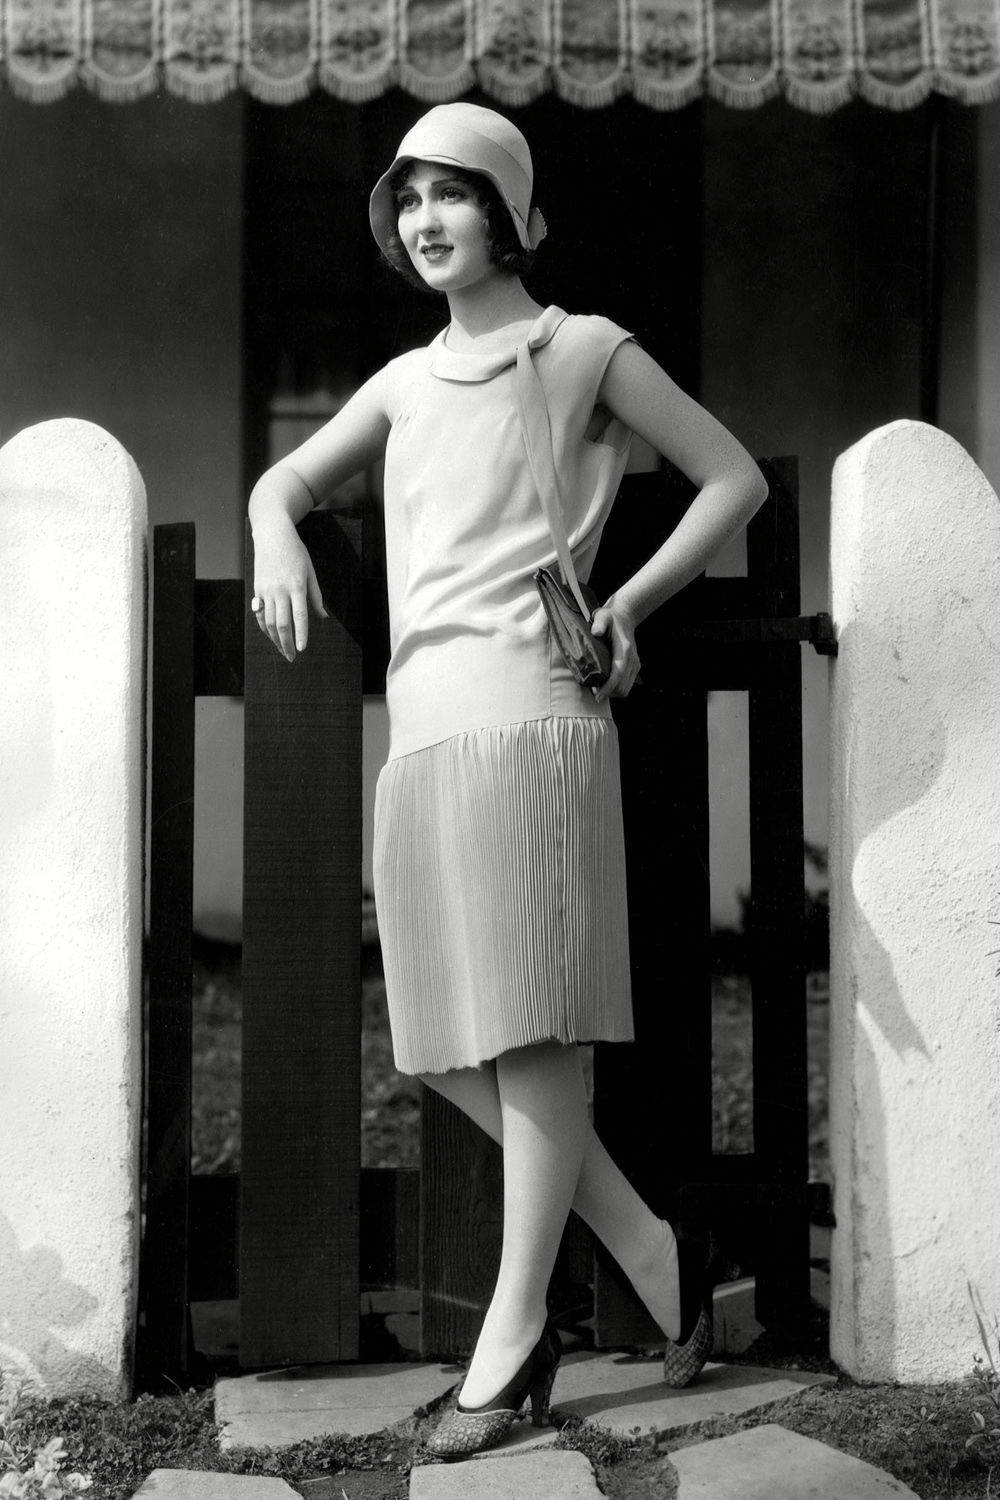 25 Vintage Women's Fashion 1940s Fashion and Style